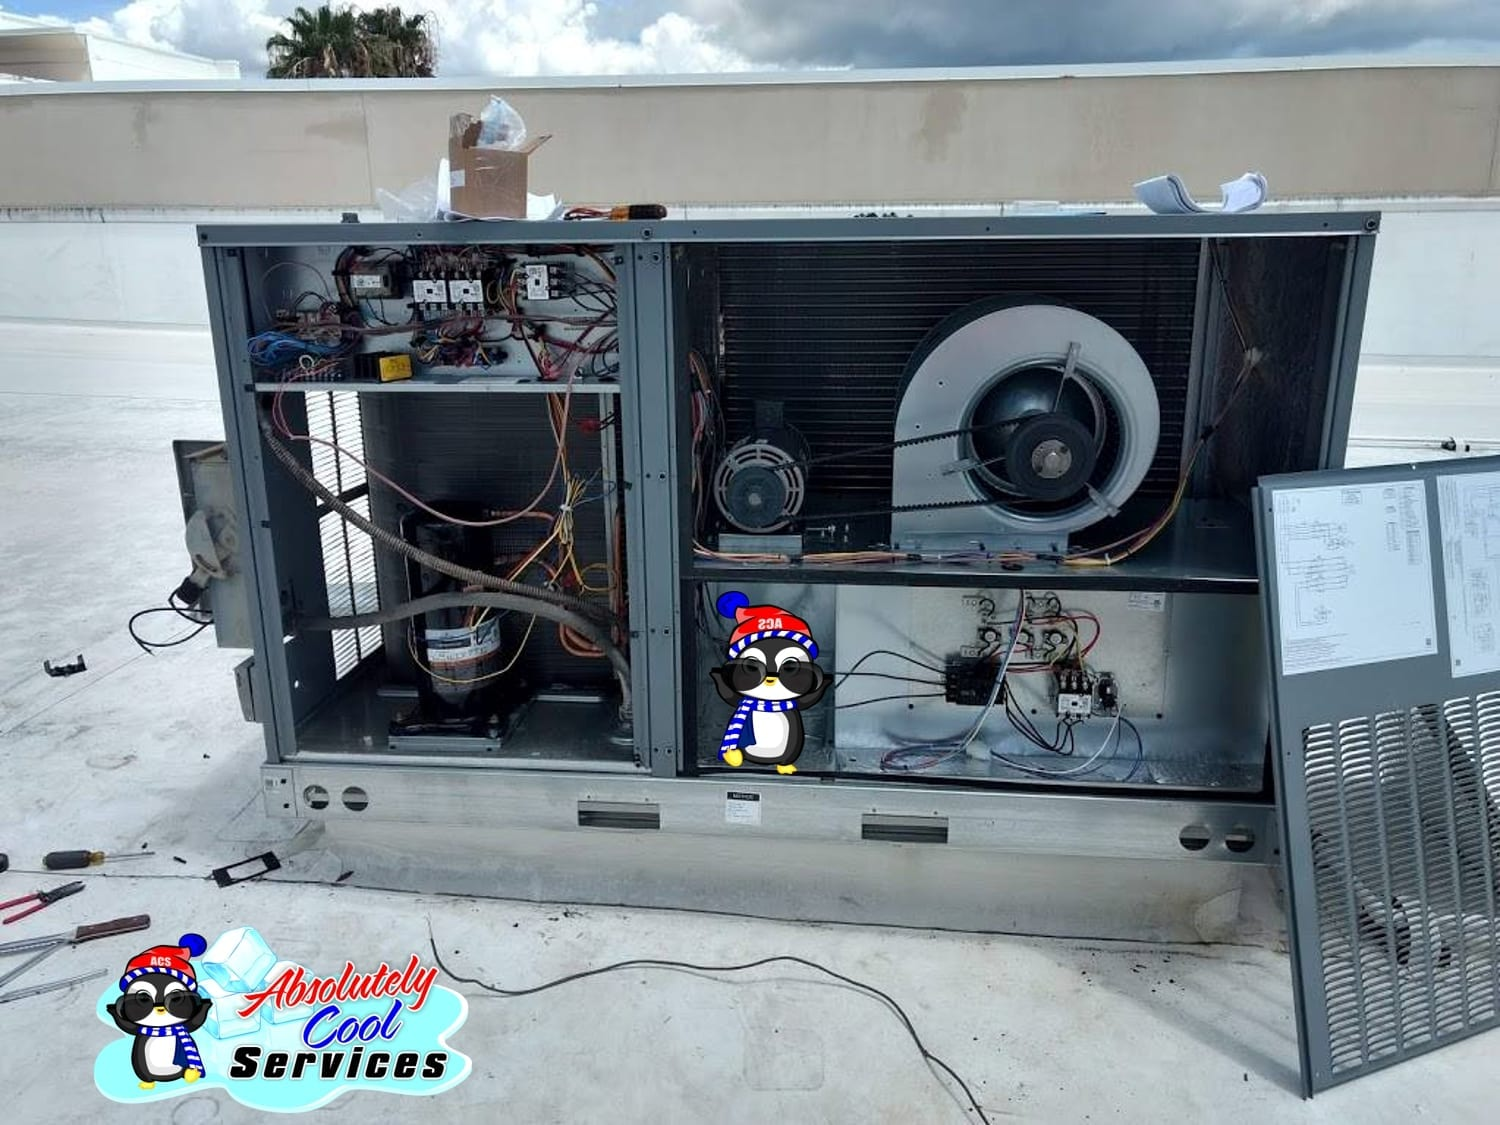 Roof Air Conditioning | Emergency Air Conditioning Maintenance Service near West Palm Beach